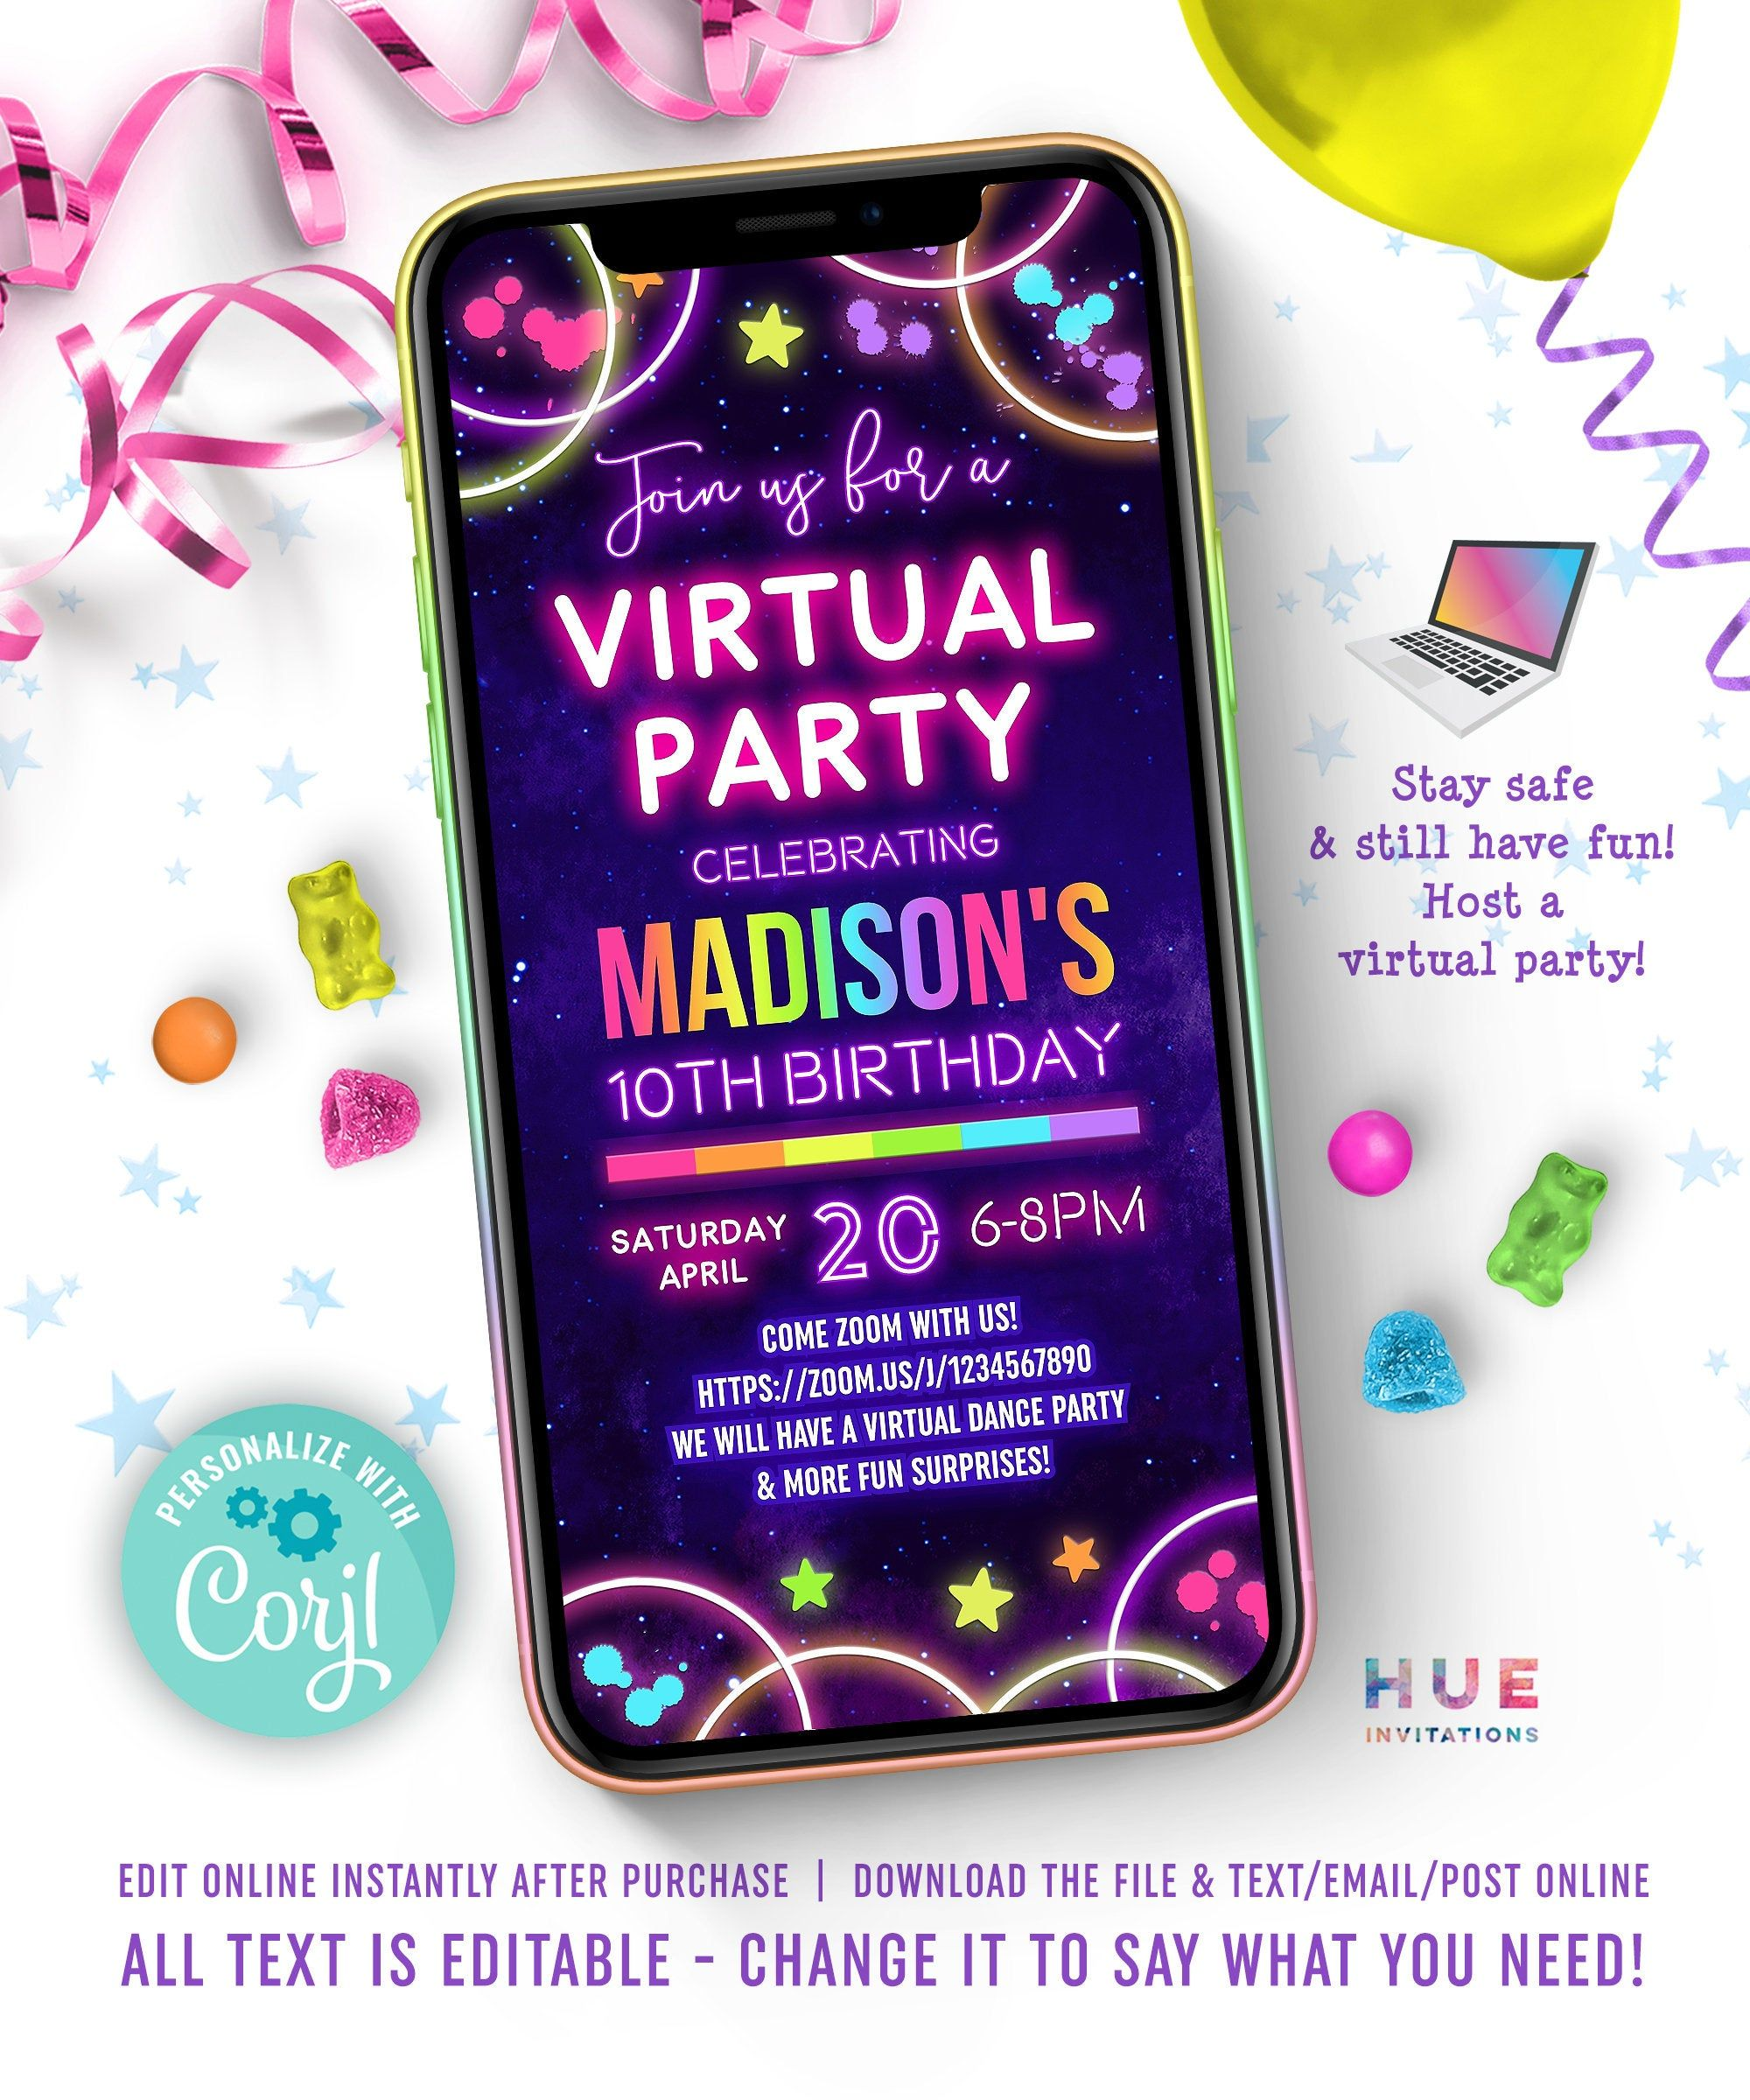 Glow Virtual Party Invitation Zoom Party Video Chat Girls Etsy In 2020 Virtual Party Dance Party Invitations Party Invitations